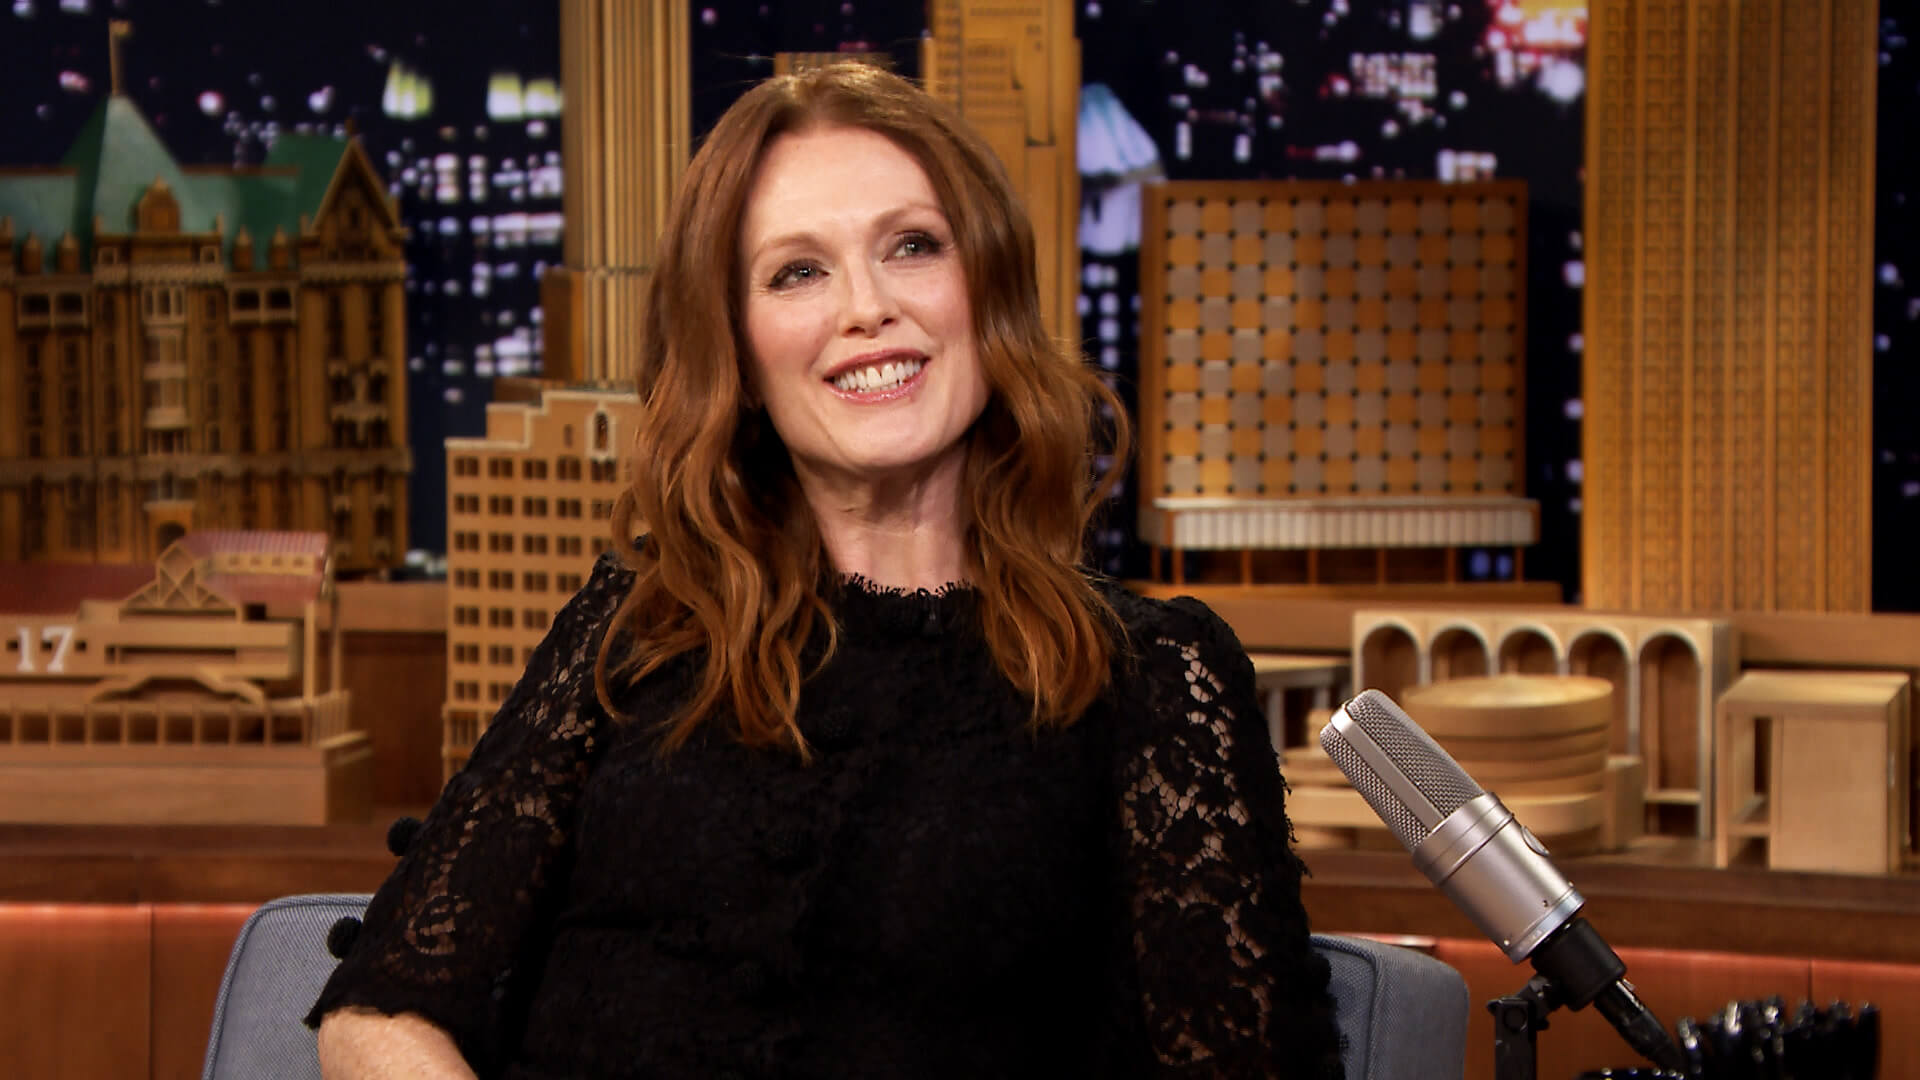 http://www.nbc.com/the-tonight-show/guest/julianne-moore